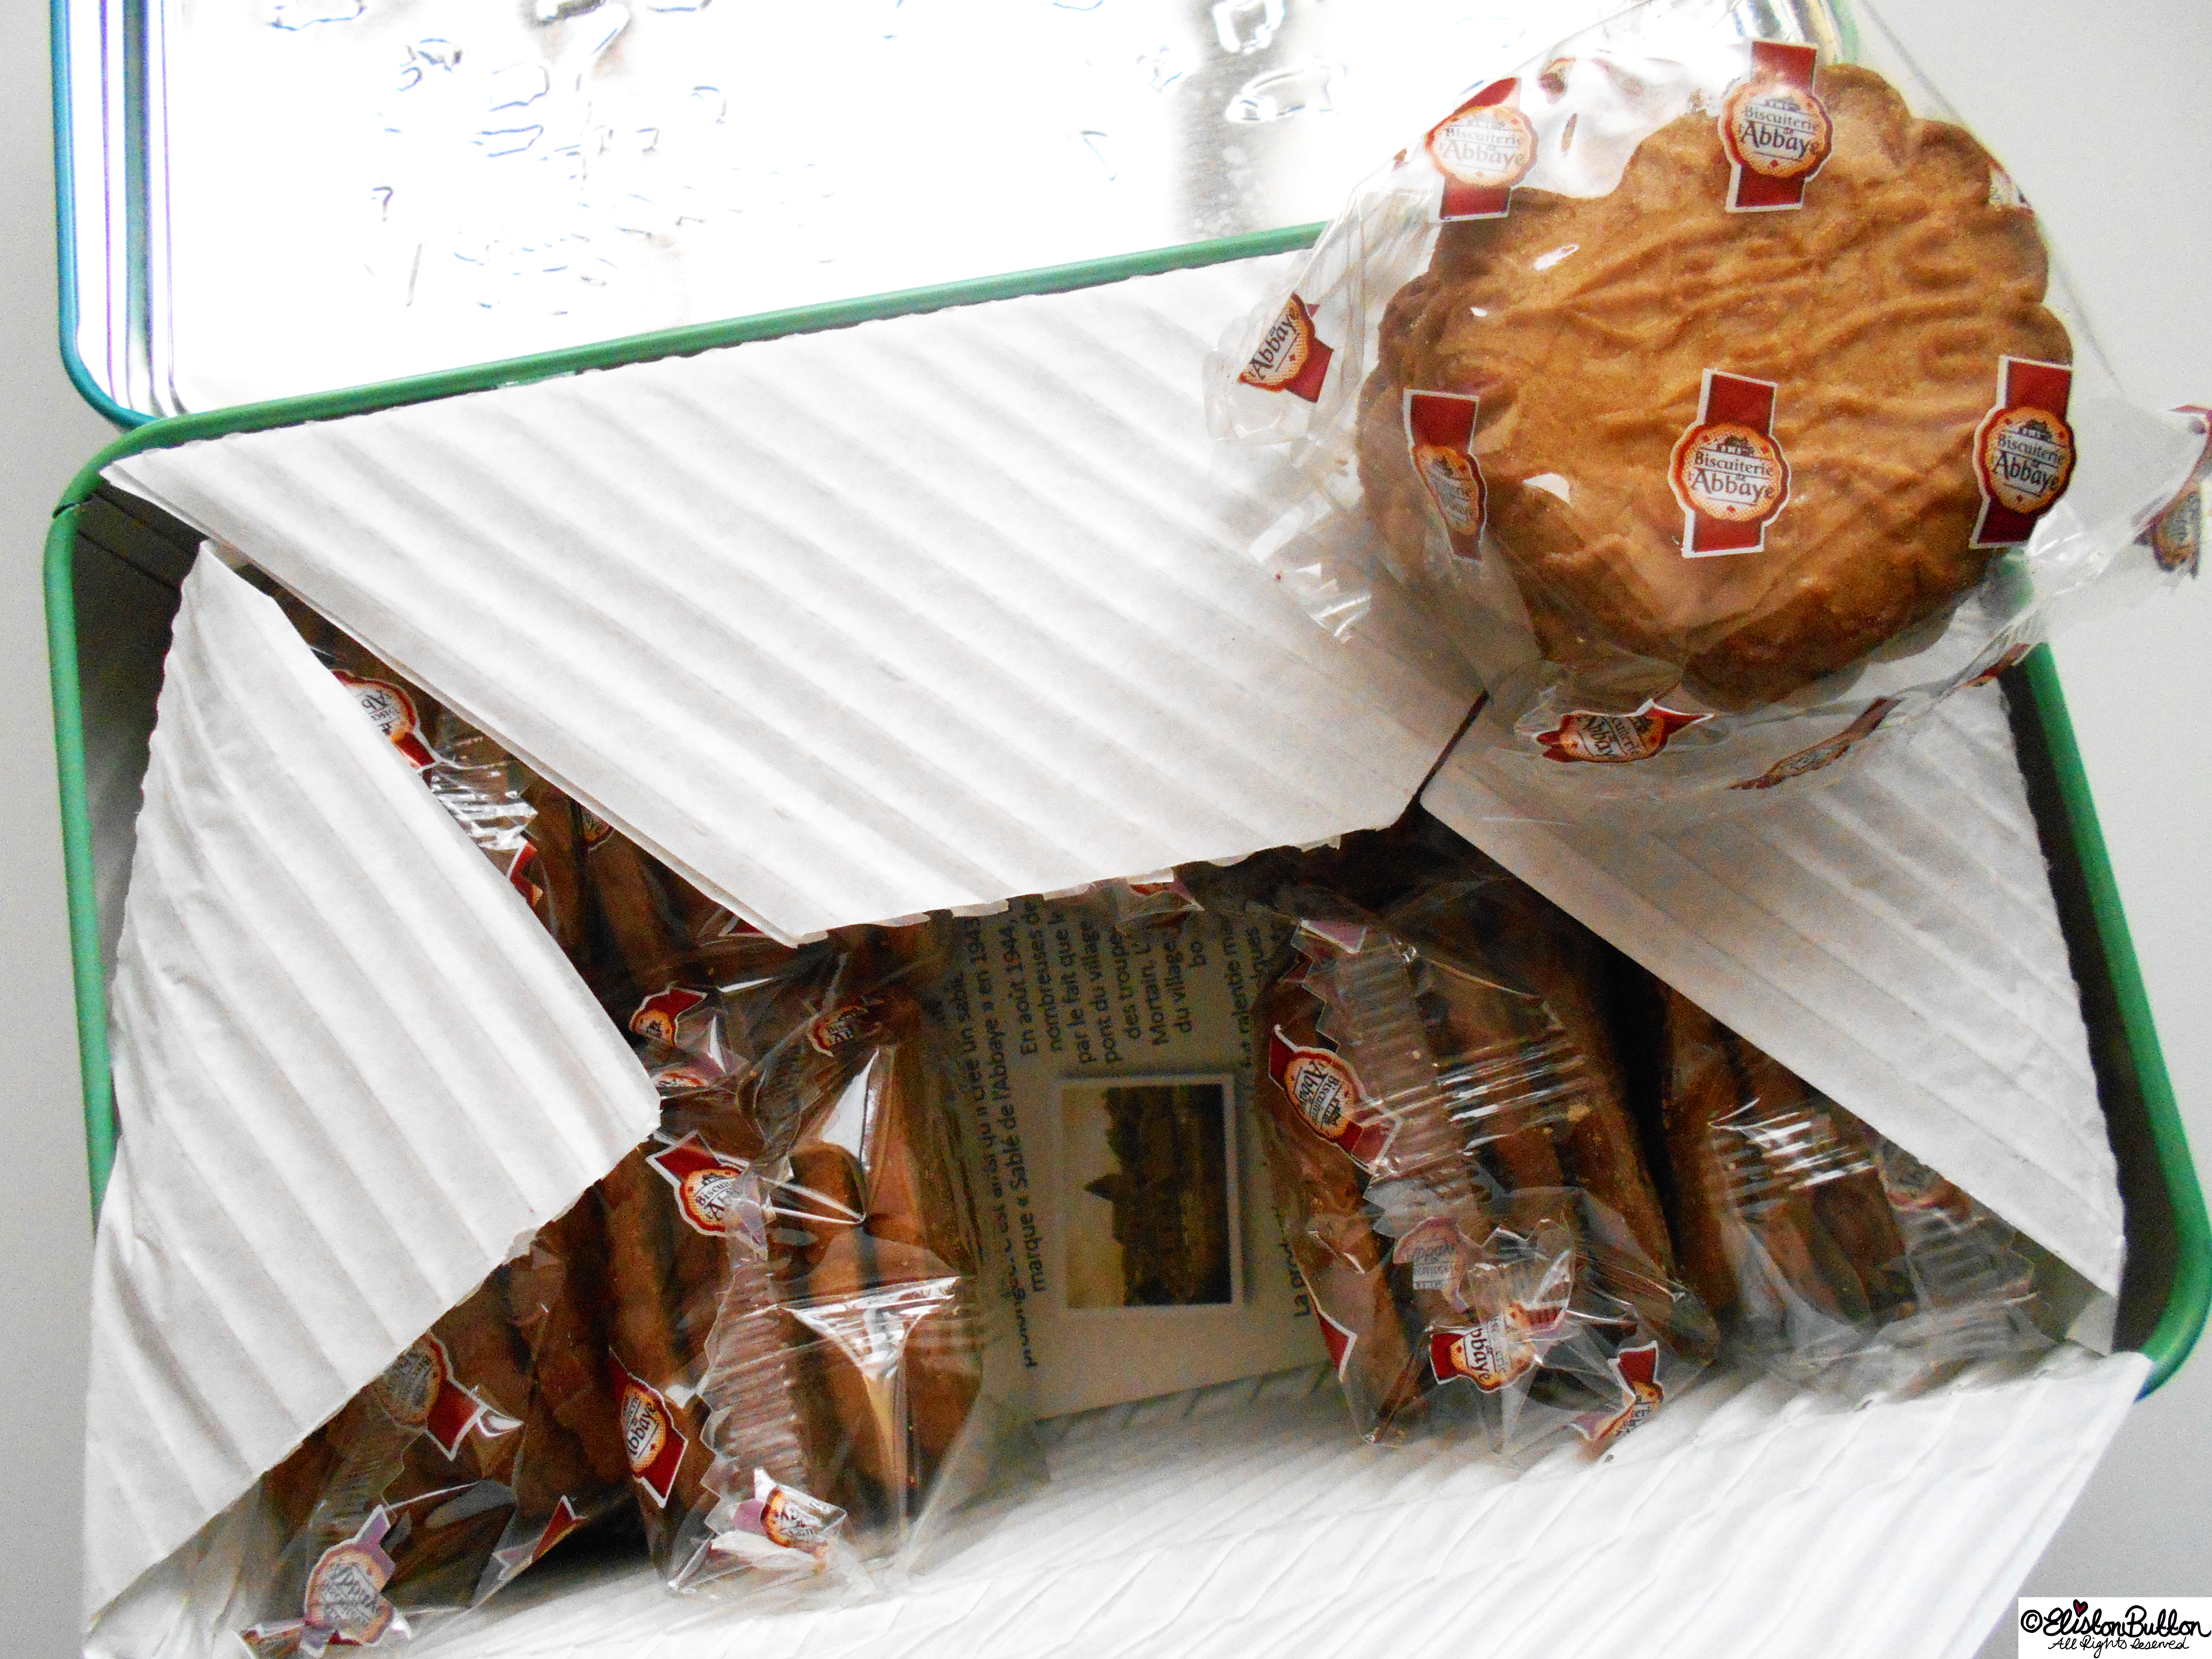 French Biscuits - Gifts from France at www.elistonbutton.com - Eliston Button - That Crafty Kid – Art, Design, Craft & Adventure.